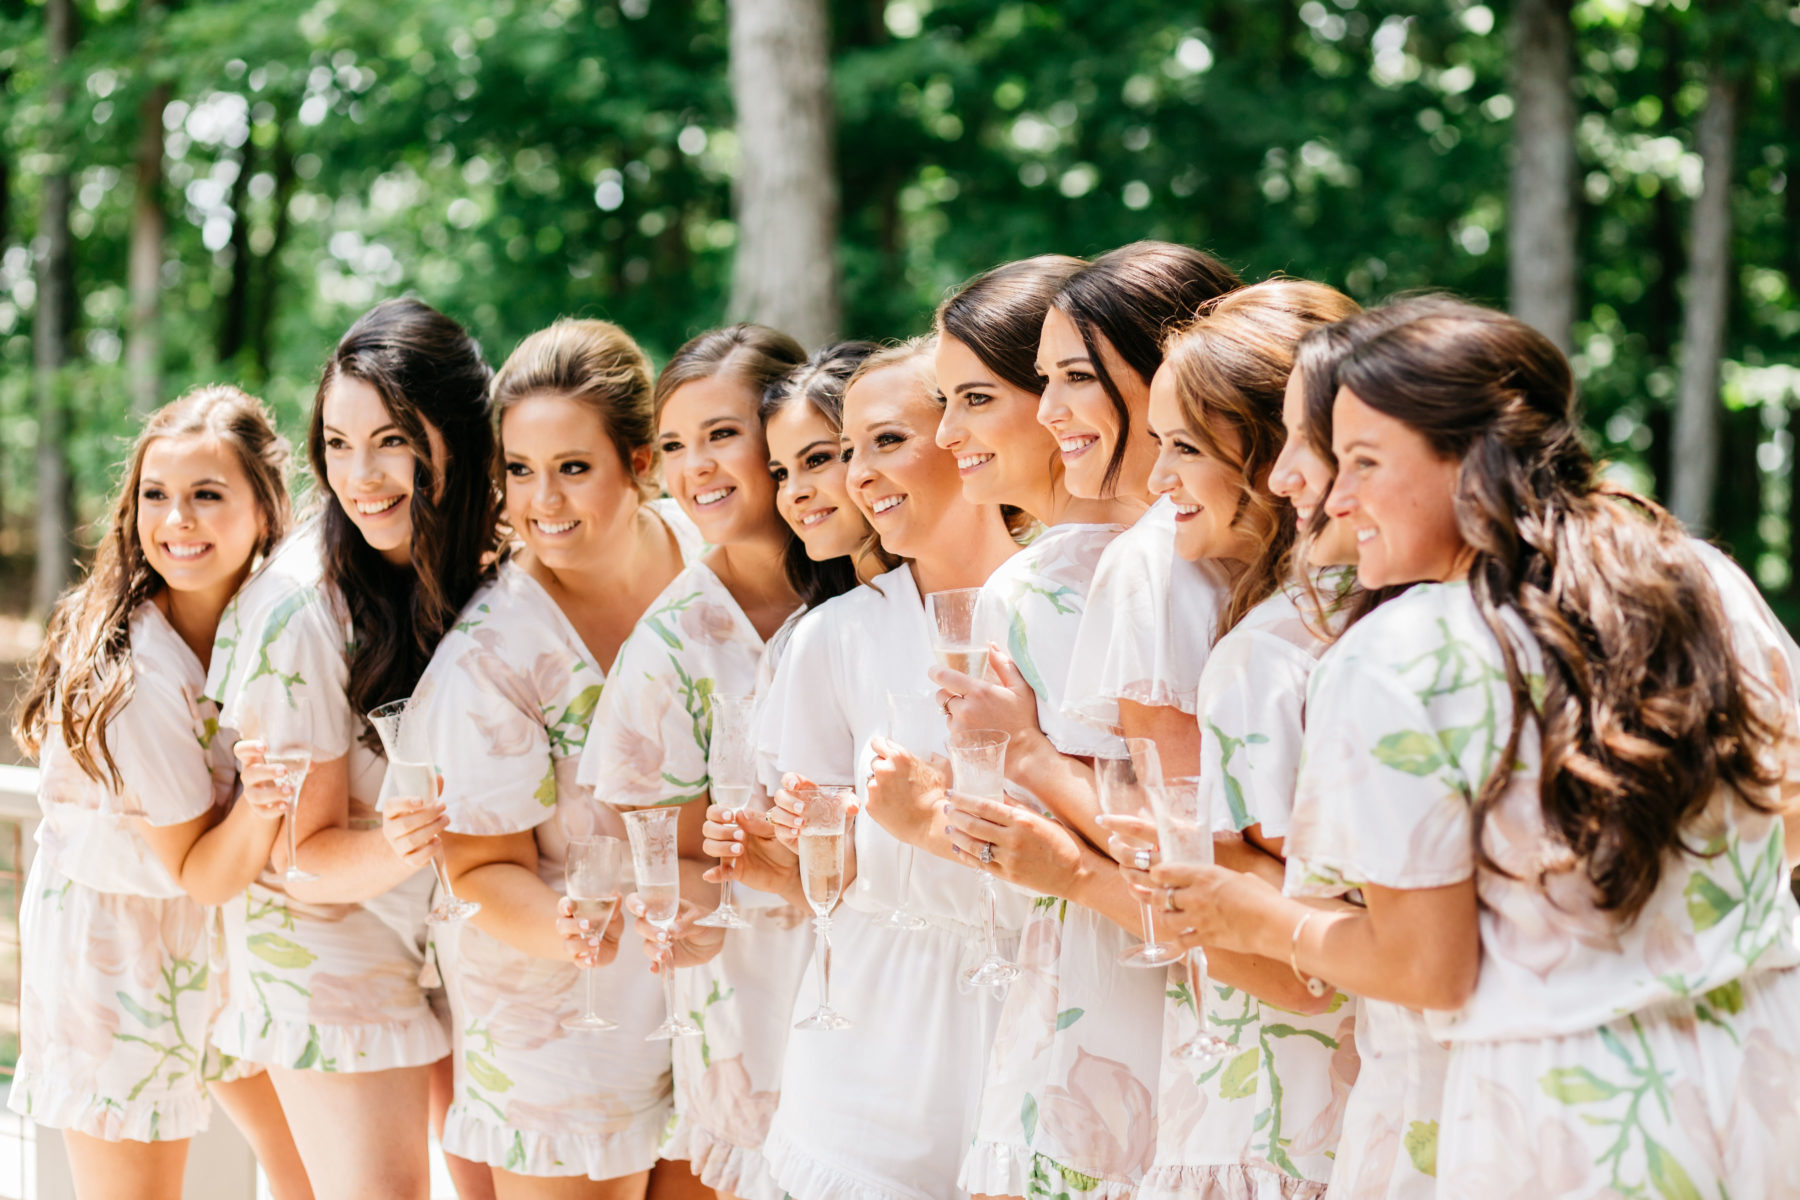 Bridal party: Rustic Front Porch Farms wedding featured on Nashville Bride Guide